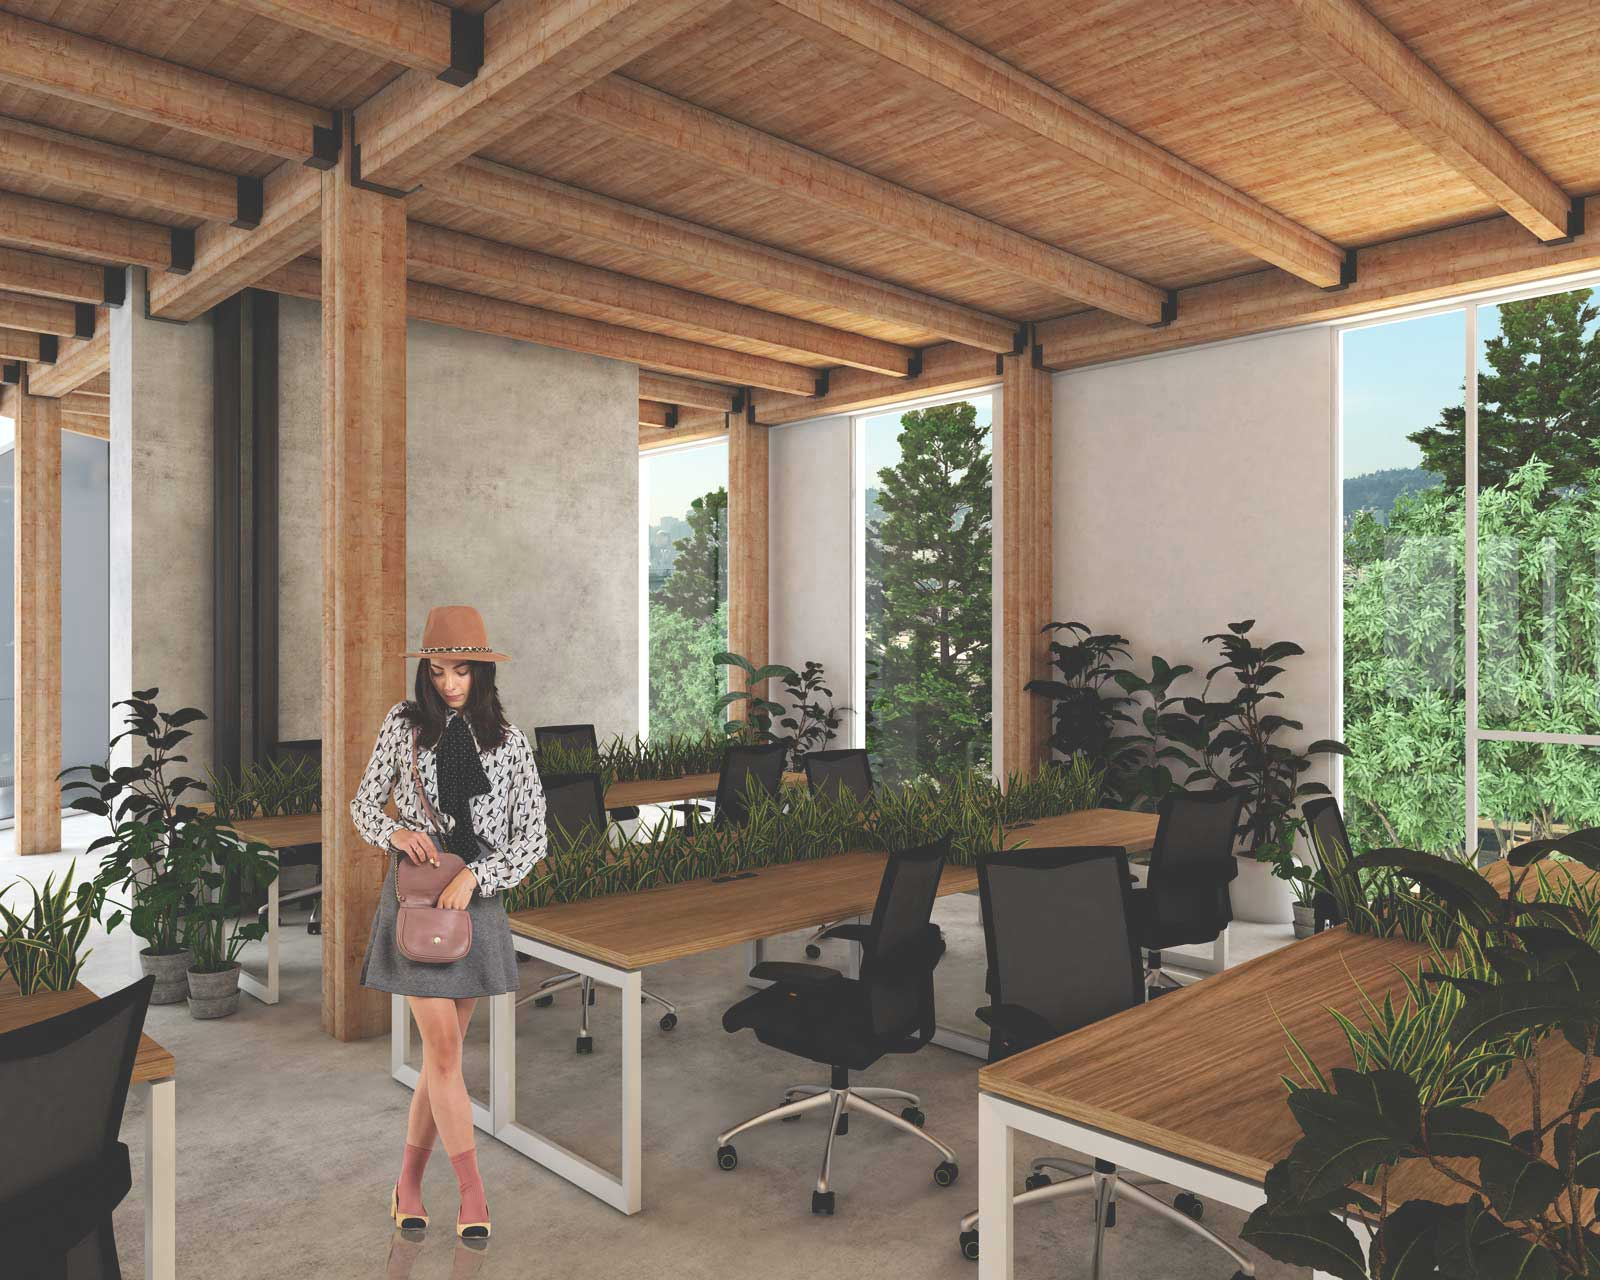 a render of the office interior design